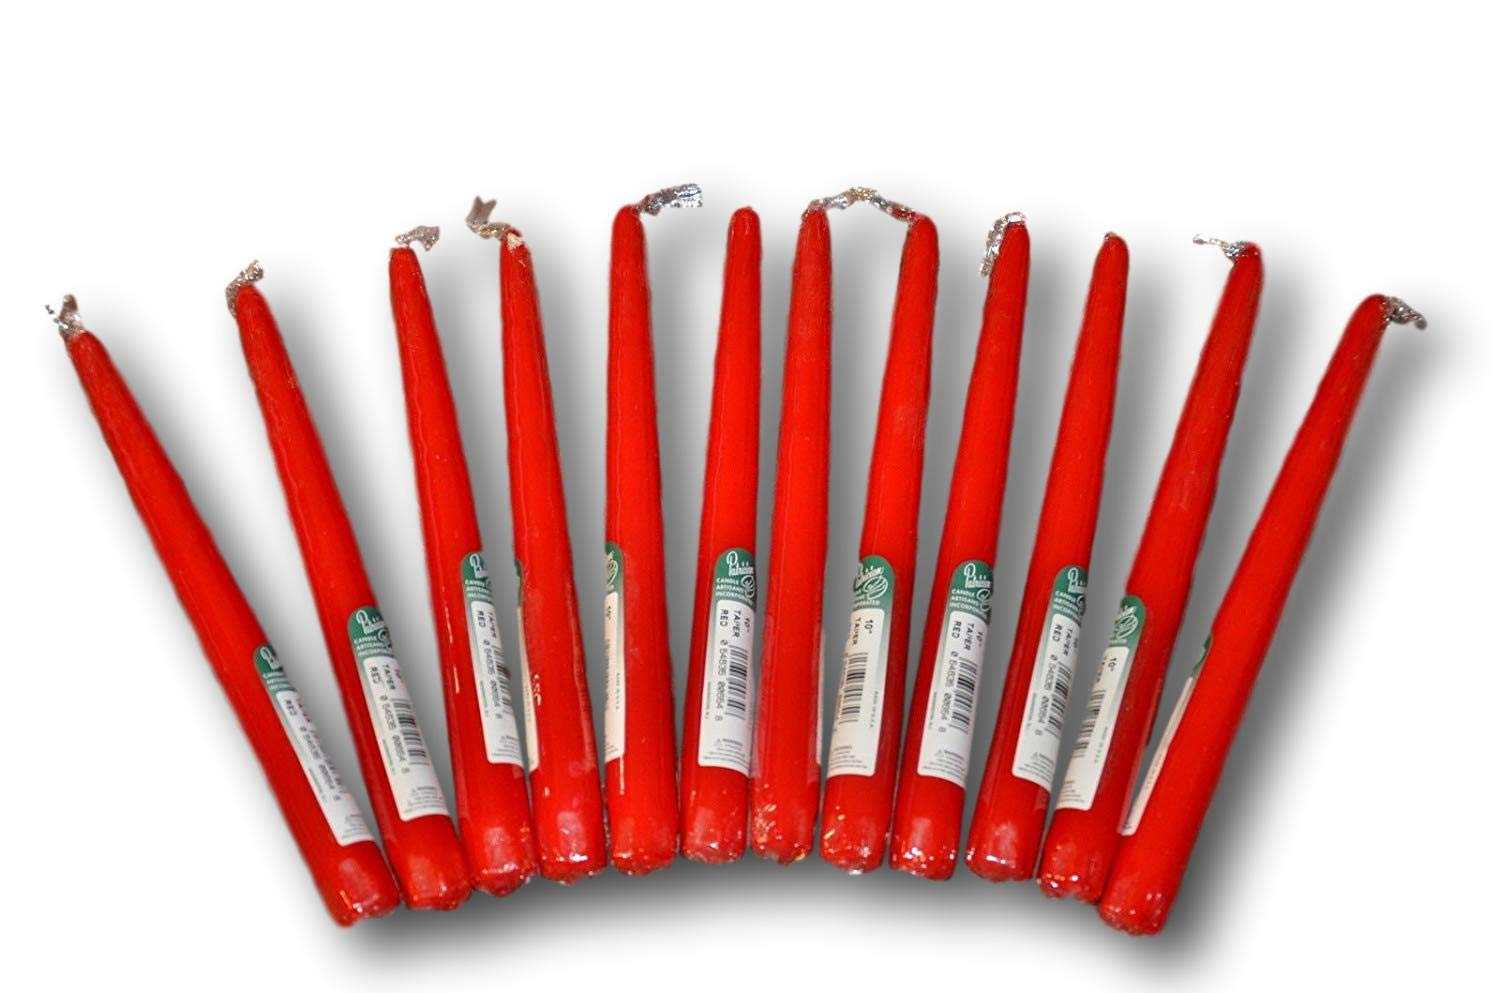 Dripless Taper Candles 10'' inch Tall Tapered Wedding Dinner Candle Set of 12 (RED) Cello wrap Sealed Made in USA